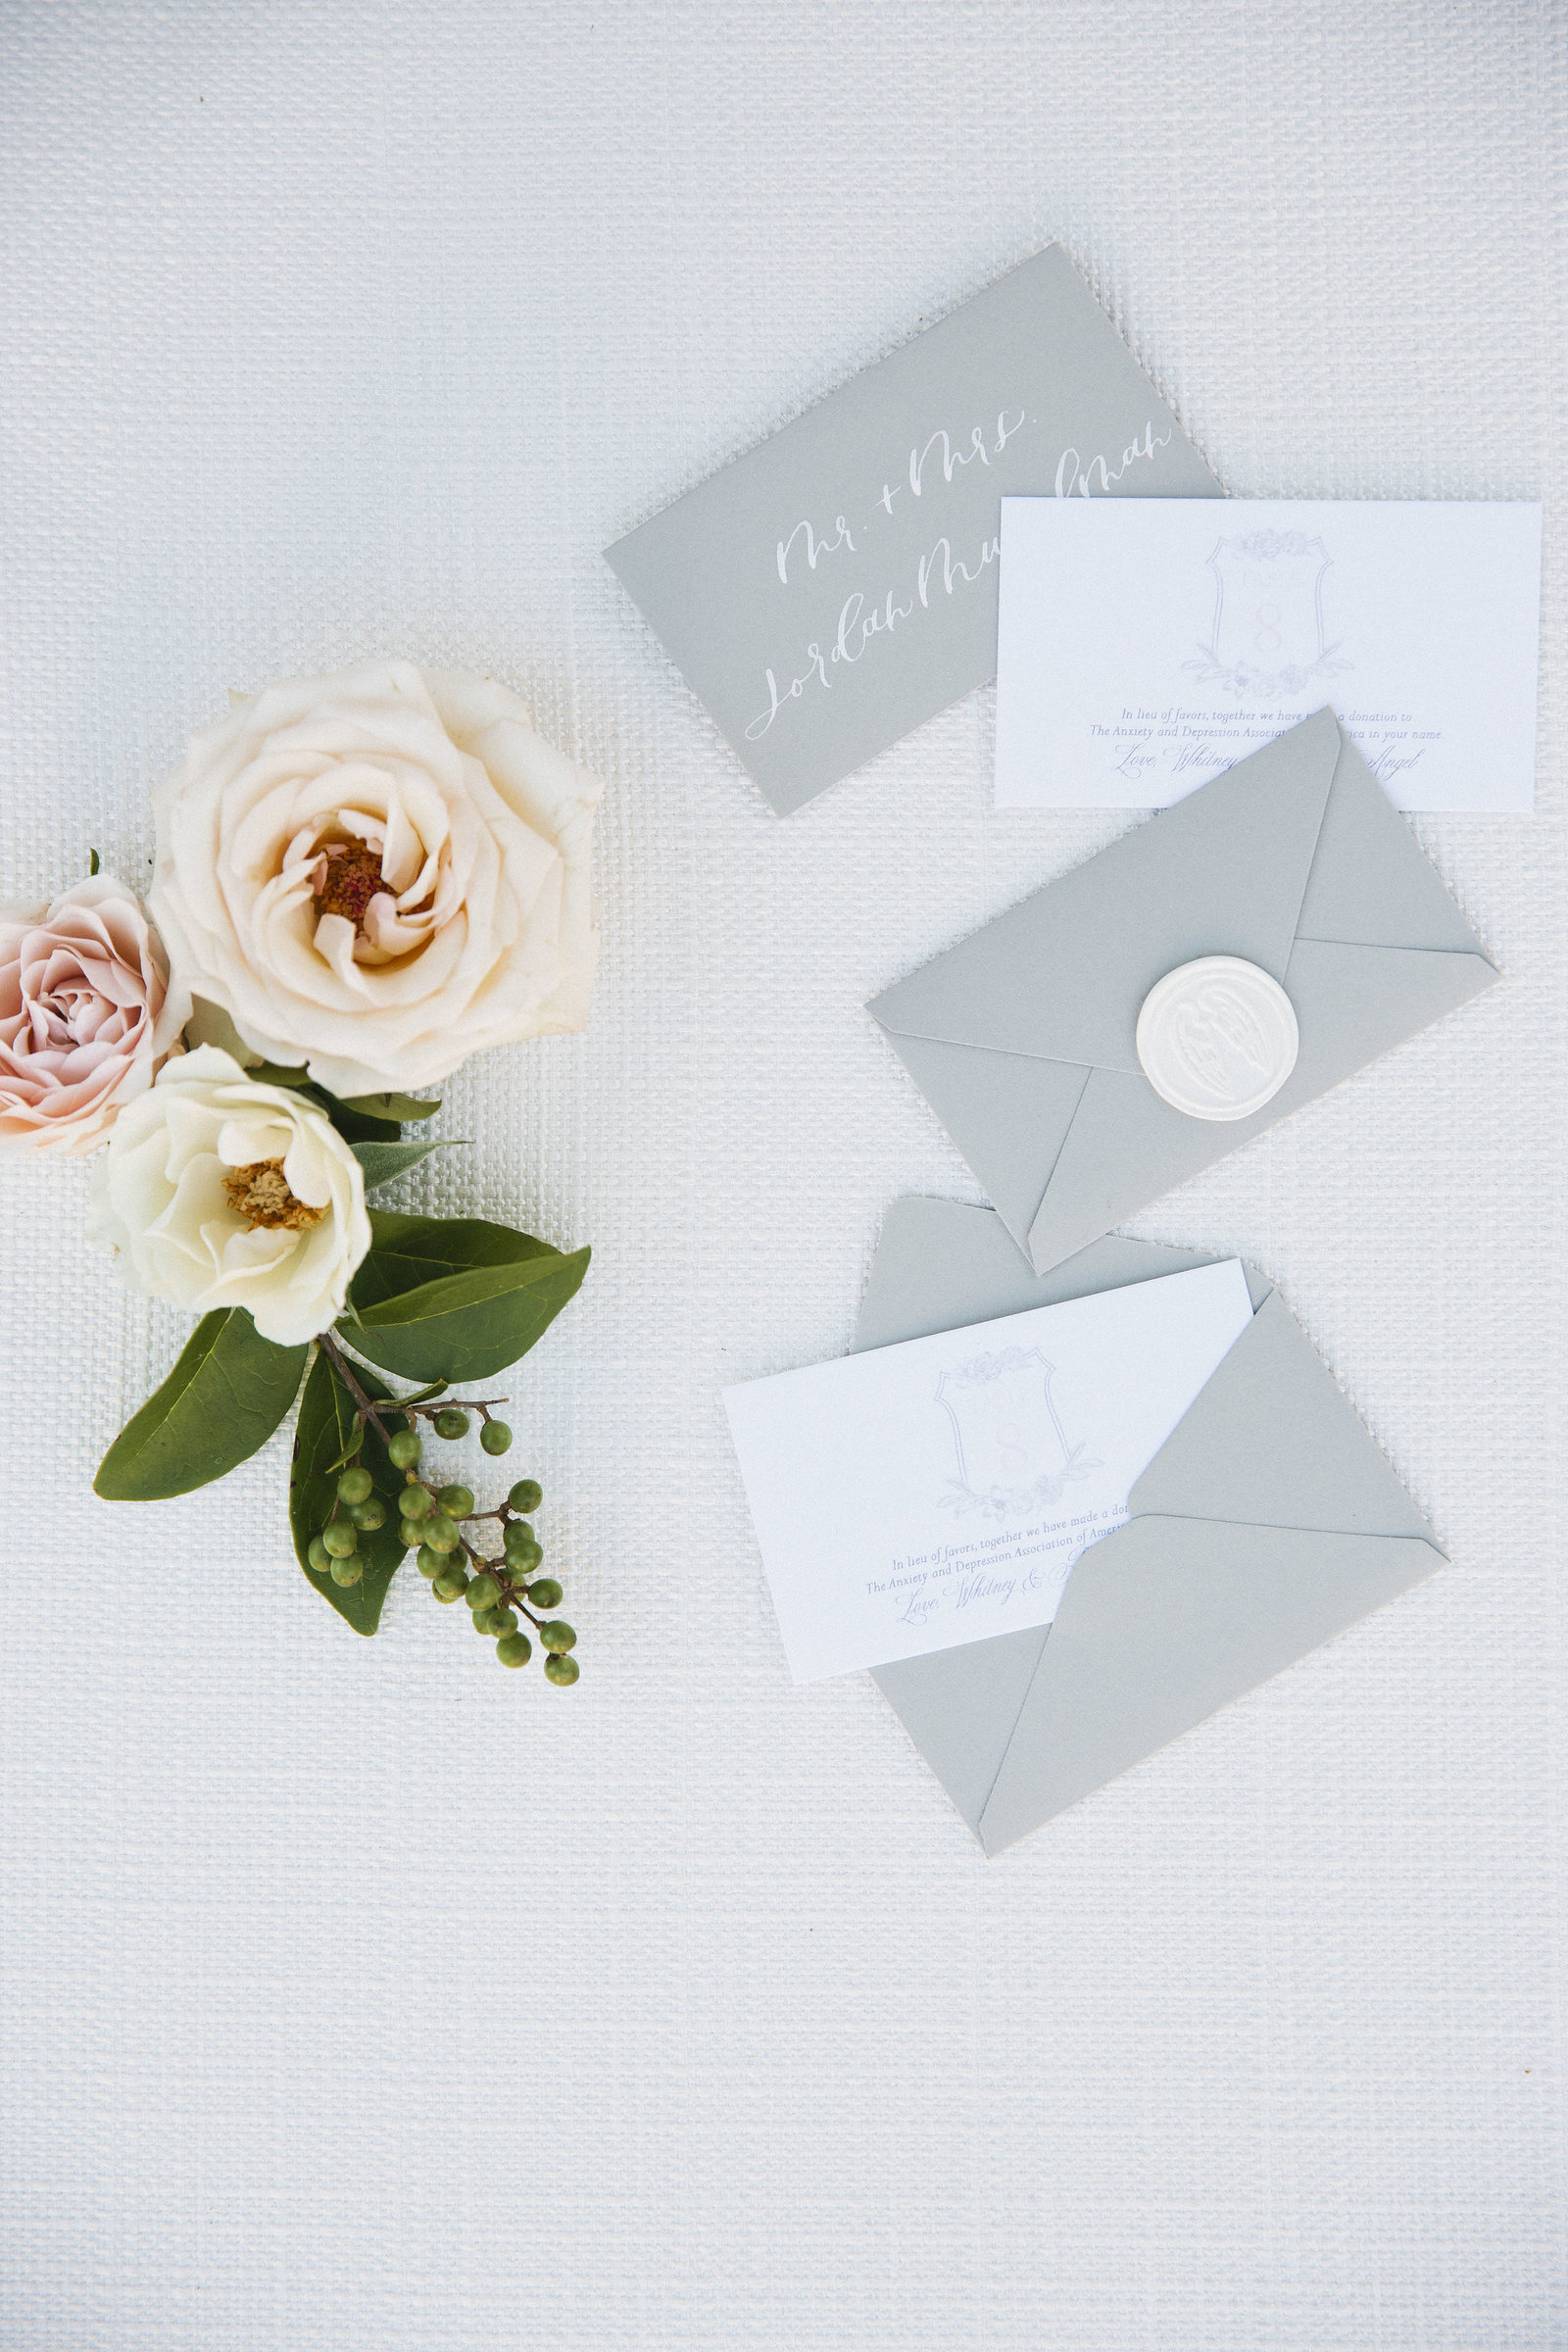 Escort cards with envelopes and wax seals for an escort card display